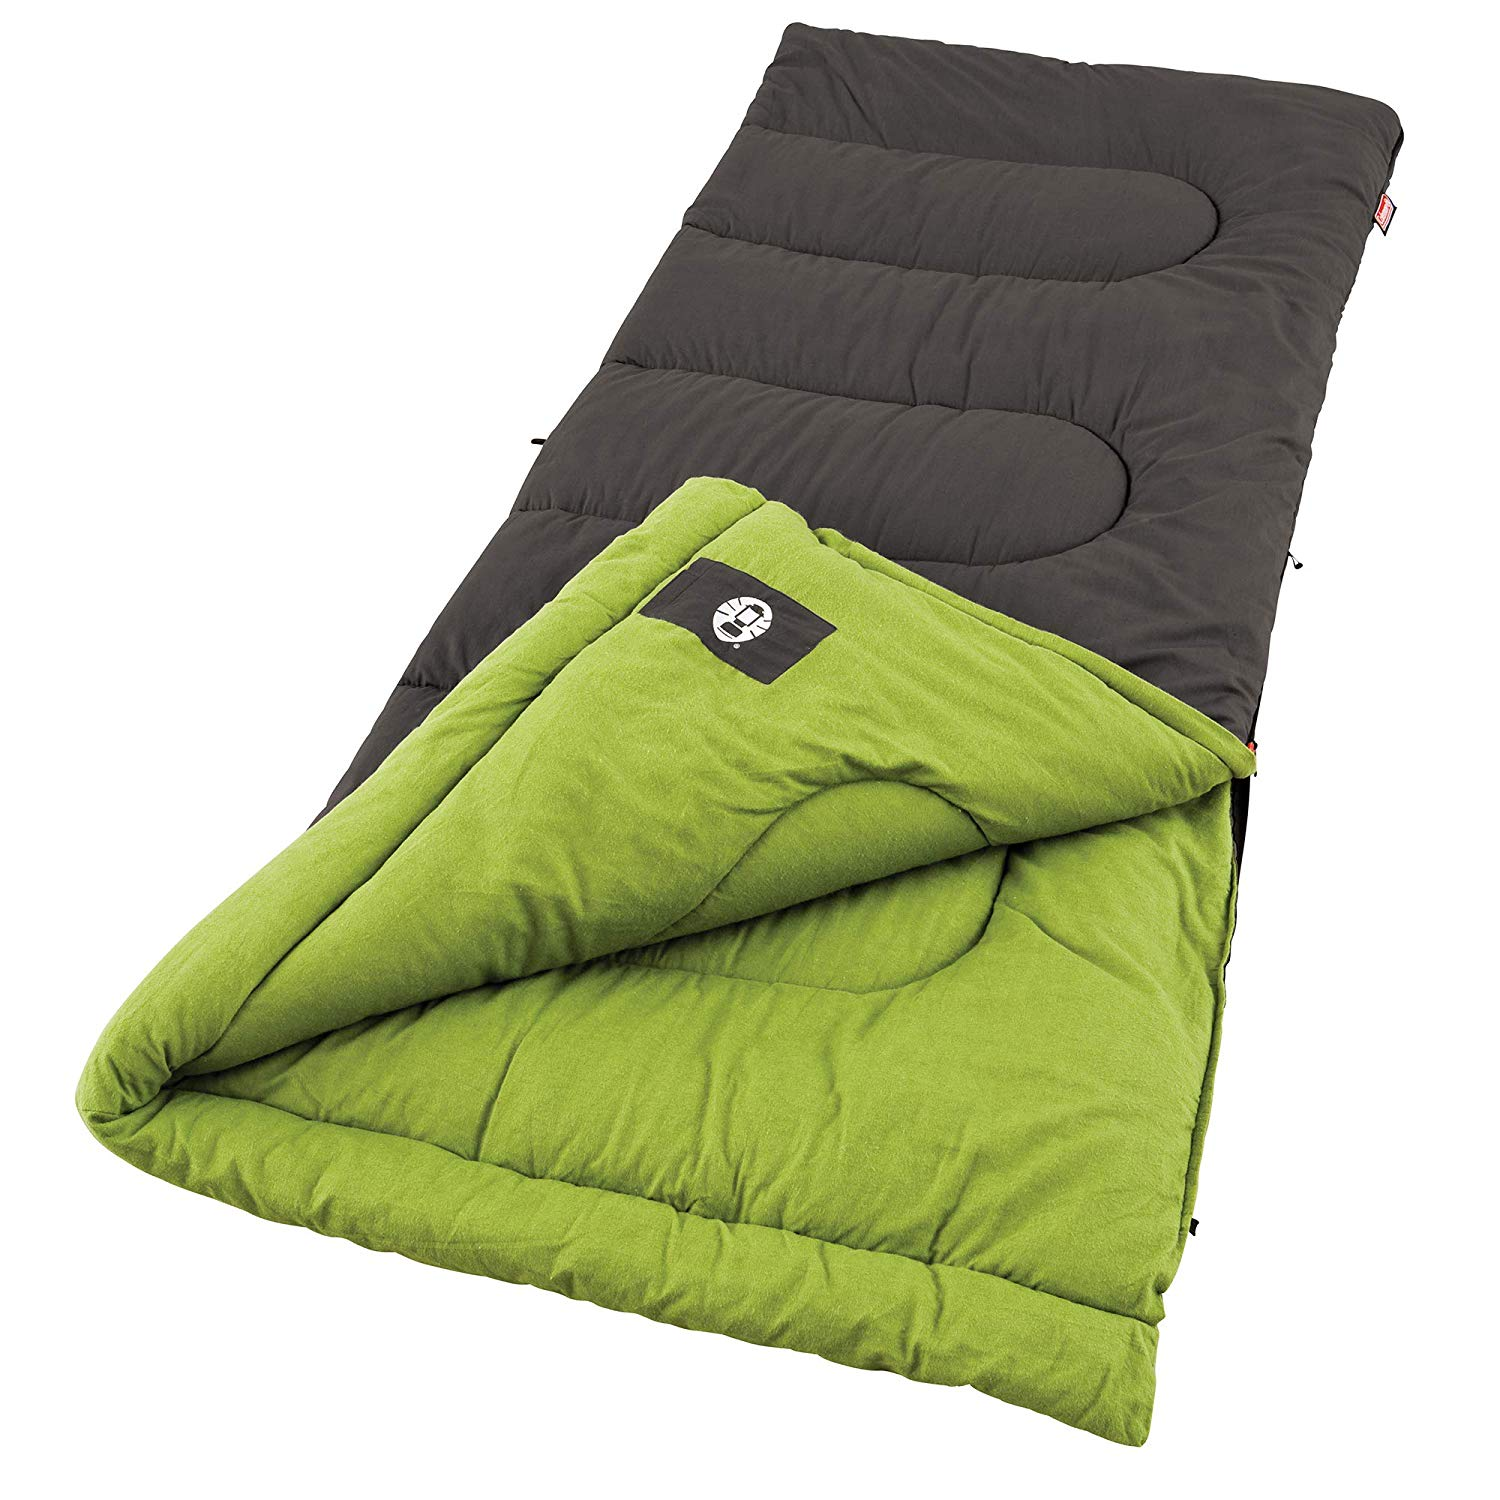 An image of Coleman Duck Harbor 2000004454 Men's Cotton Flannel Sleeping Bag